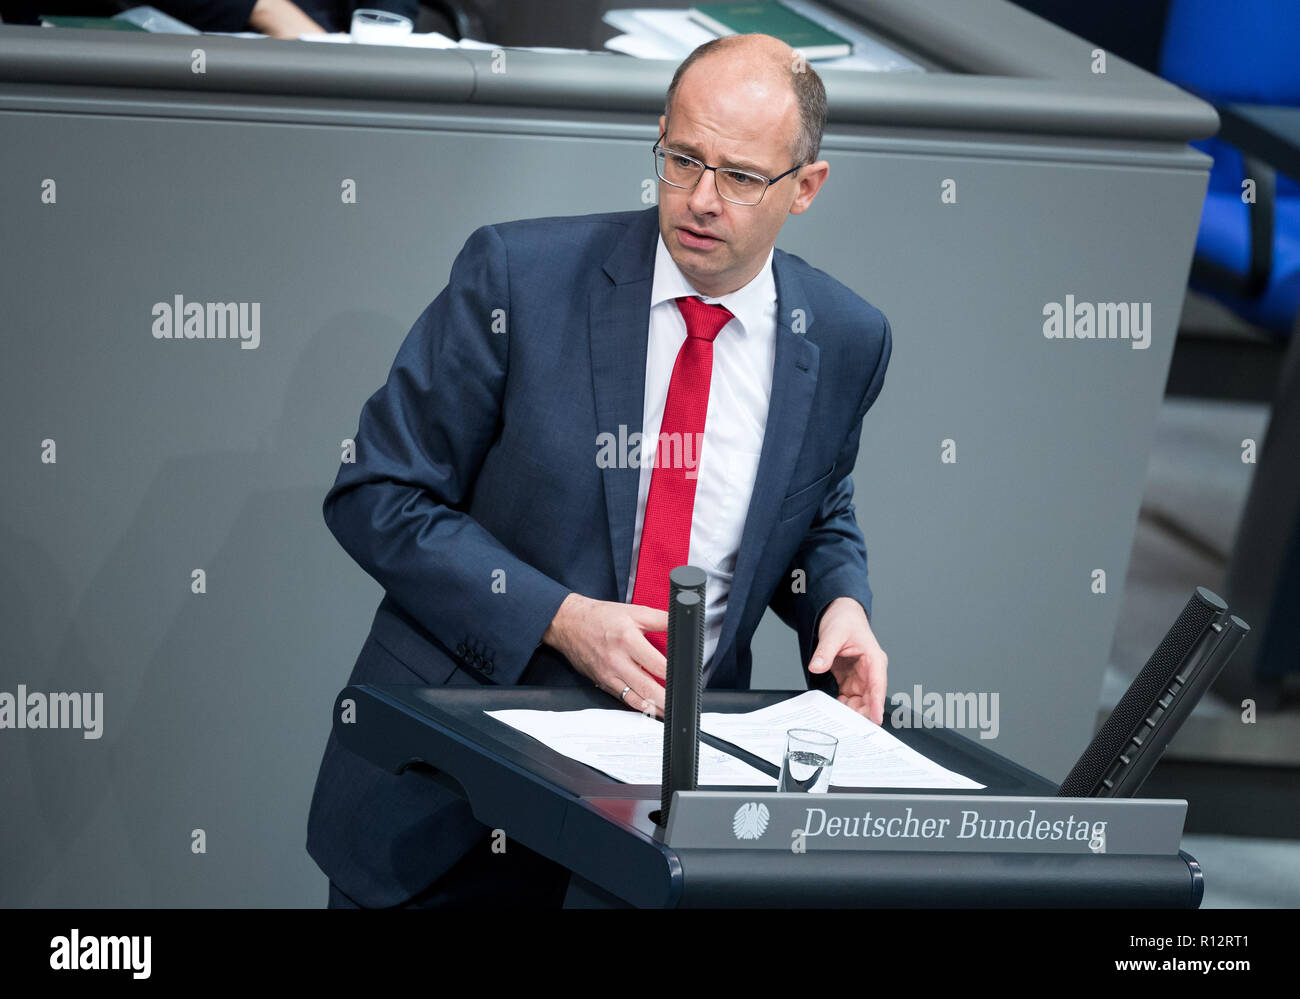 Berlin, Germany. 08th Nov, 2018. Michael Brand (CDU) speaks during the plenary session in the German Bundestag. Topics of the 61st session of the 19th legislative period include the pension package introduced by the Federal Government, additional safe countries of origin, tax relief for families, changes in asylum law, accelerated traffic planning and a current hour on the INF (Intermediate Range Nuclear Forces) nuclear disarmament treaty. Credit: Bernd von Jutrczenka/dpa/Alamy Live News - Stock Image